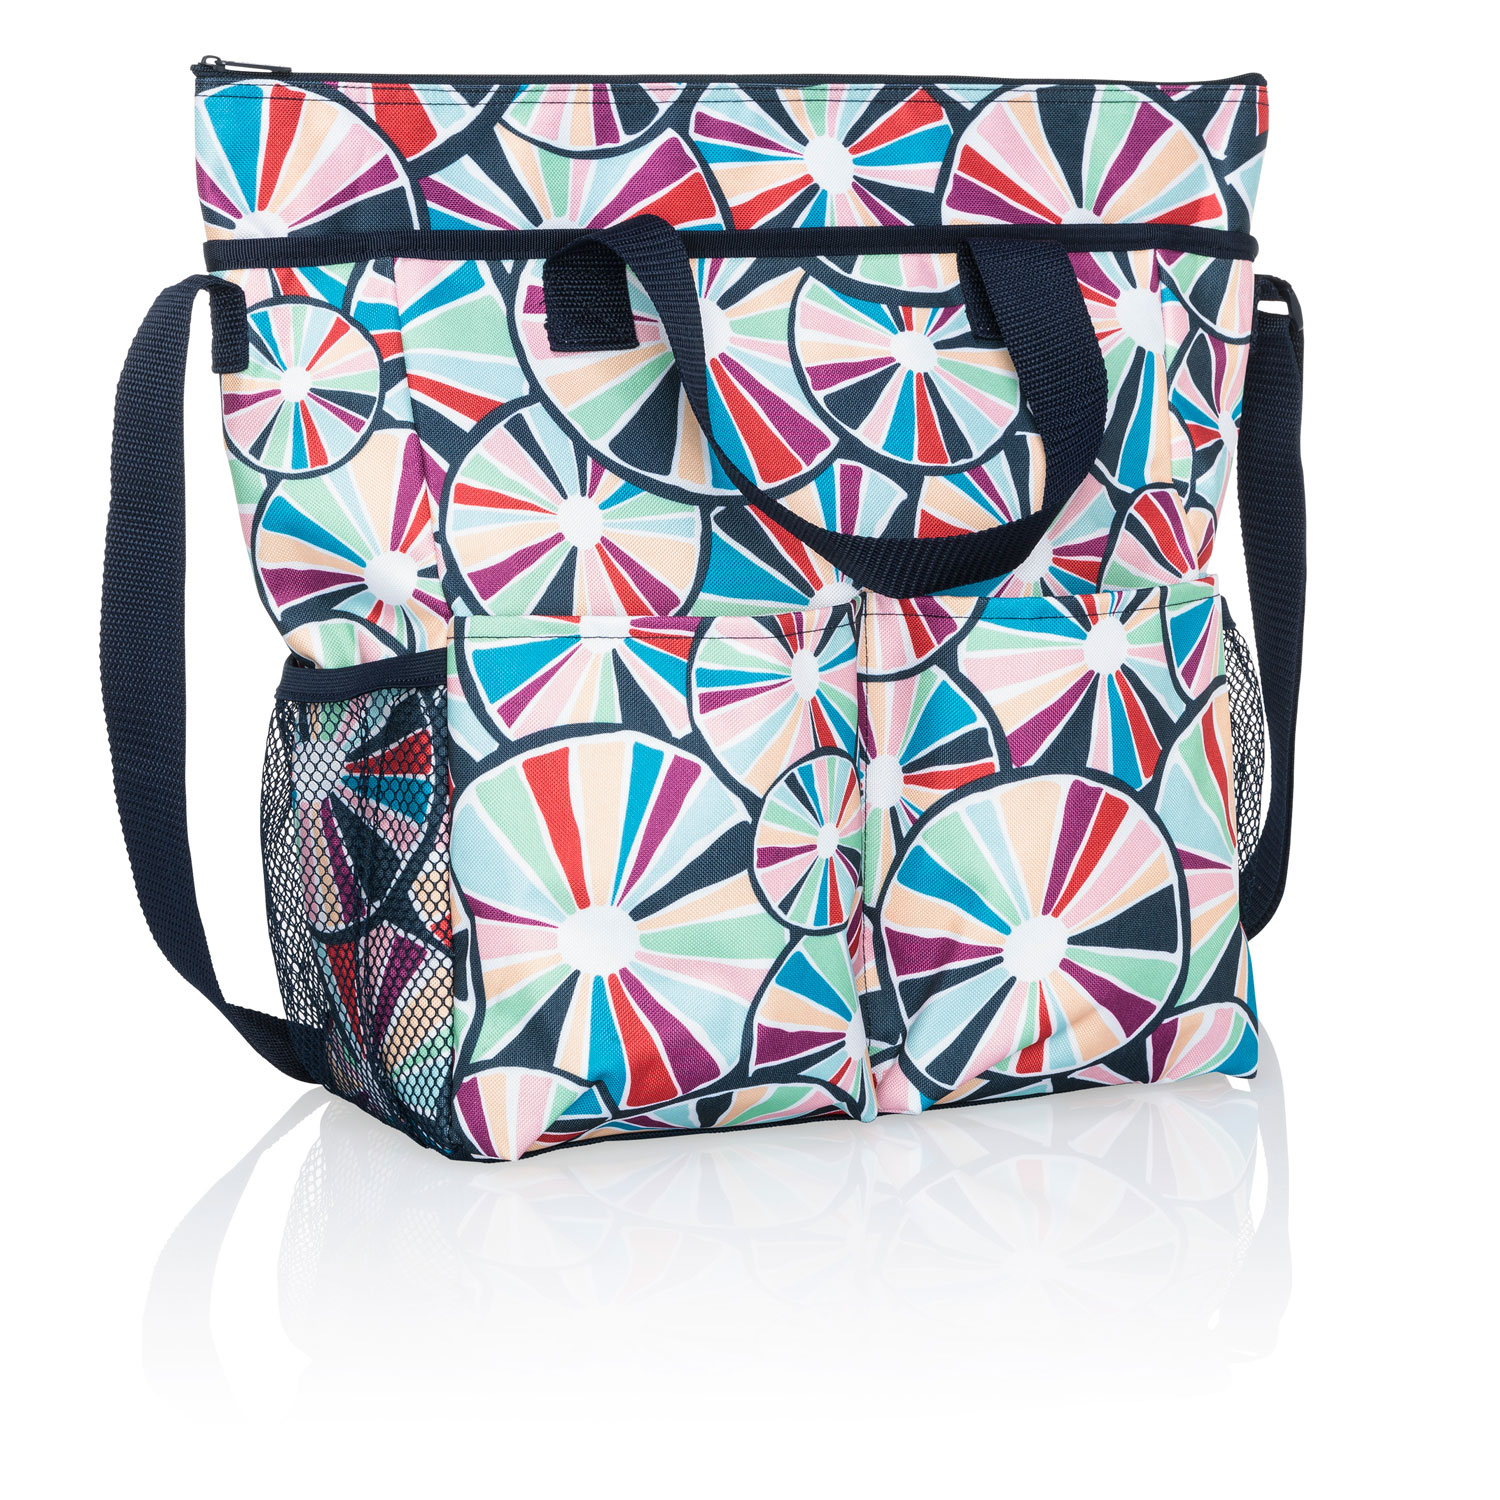 789b9b477134 Pinwheel Party - Crossbody Organizing Tote - Thirty-One Gifts